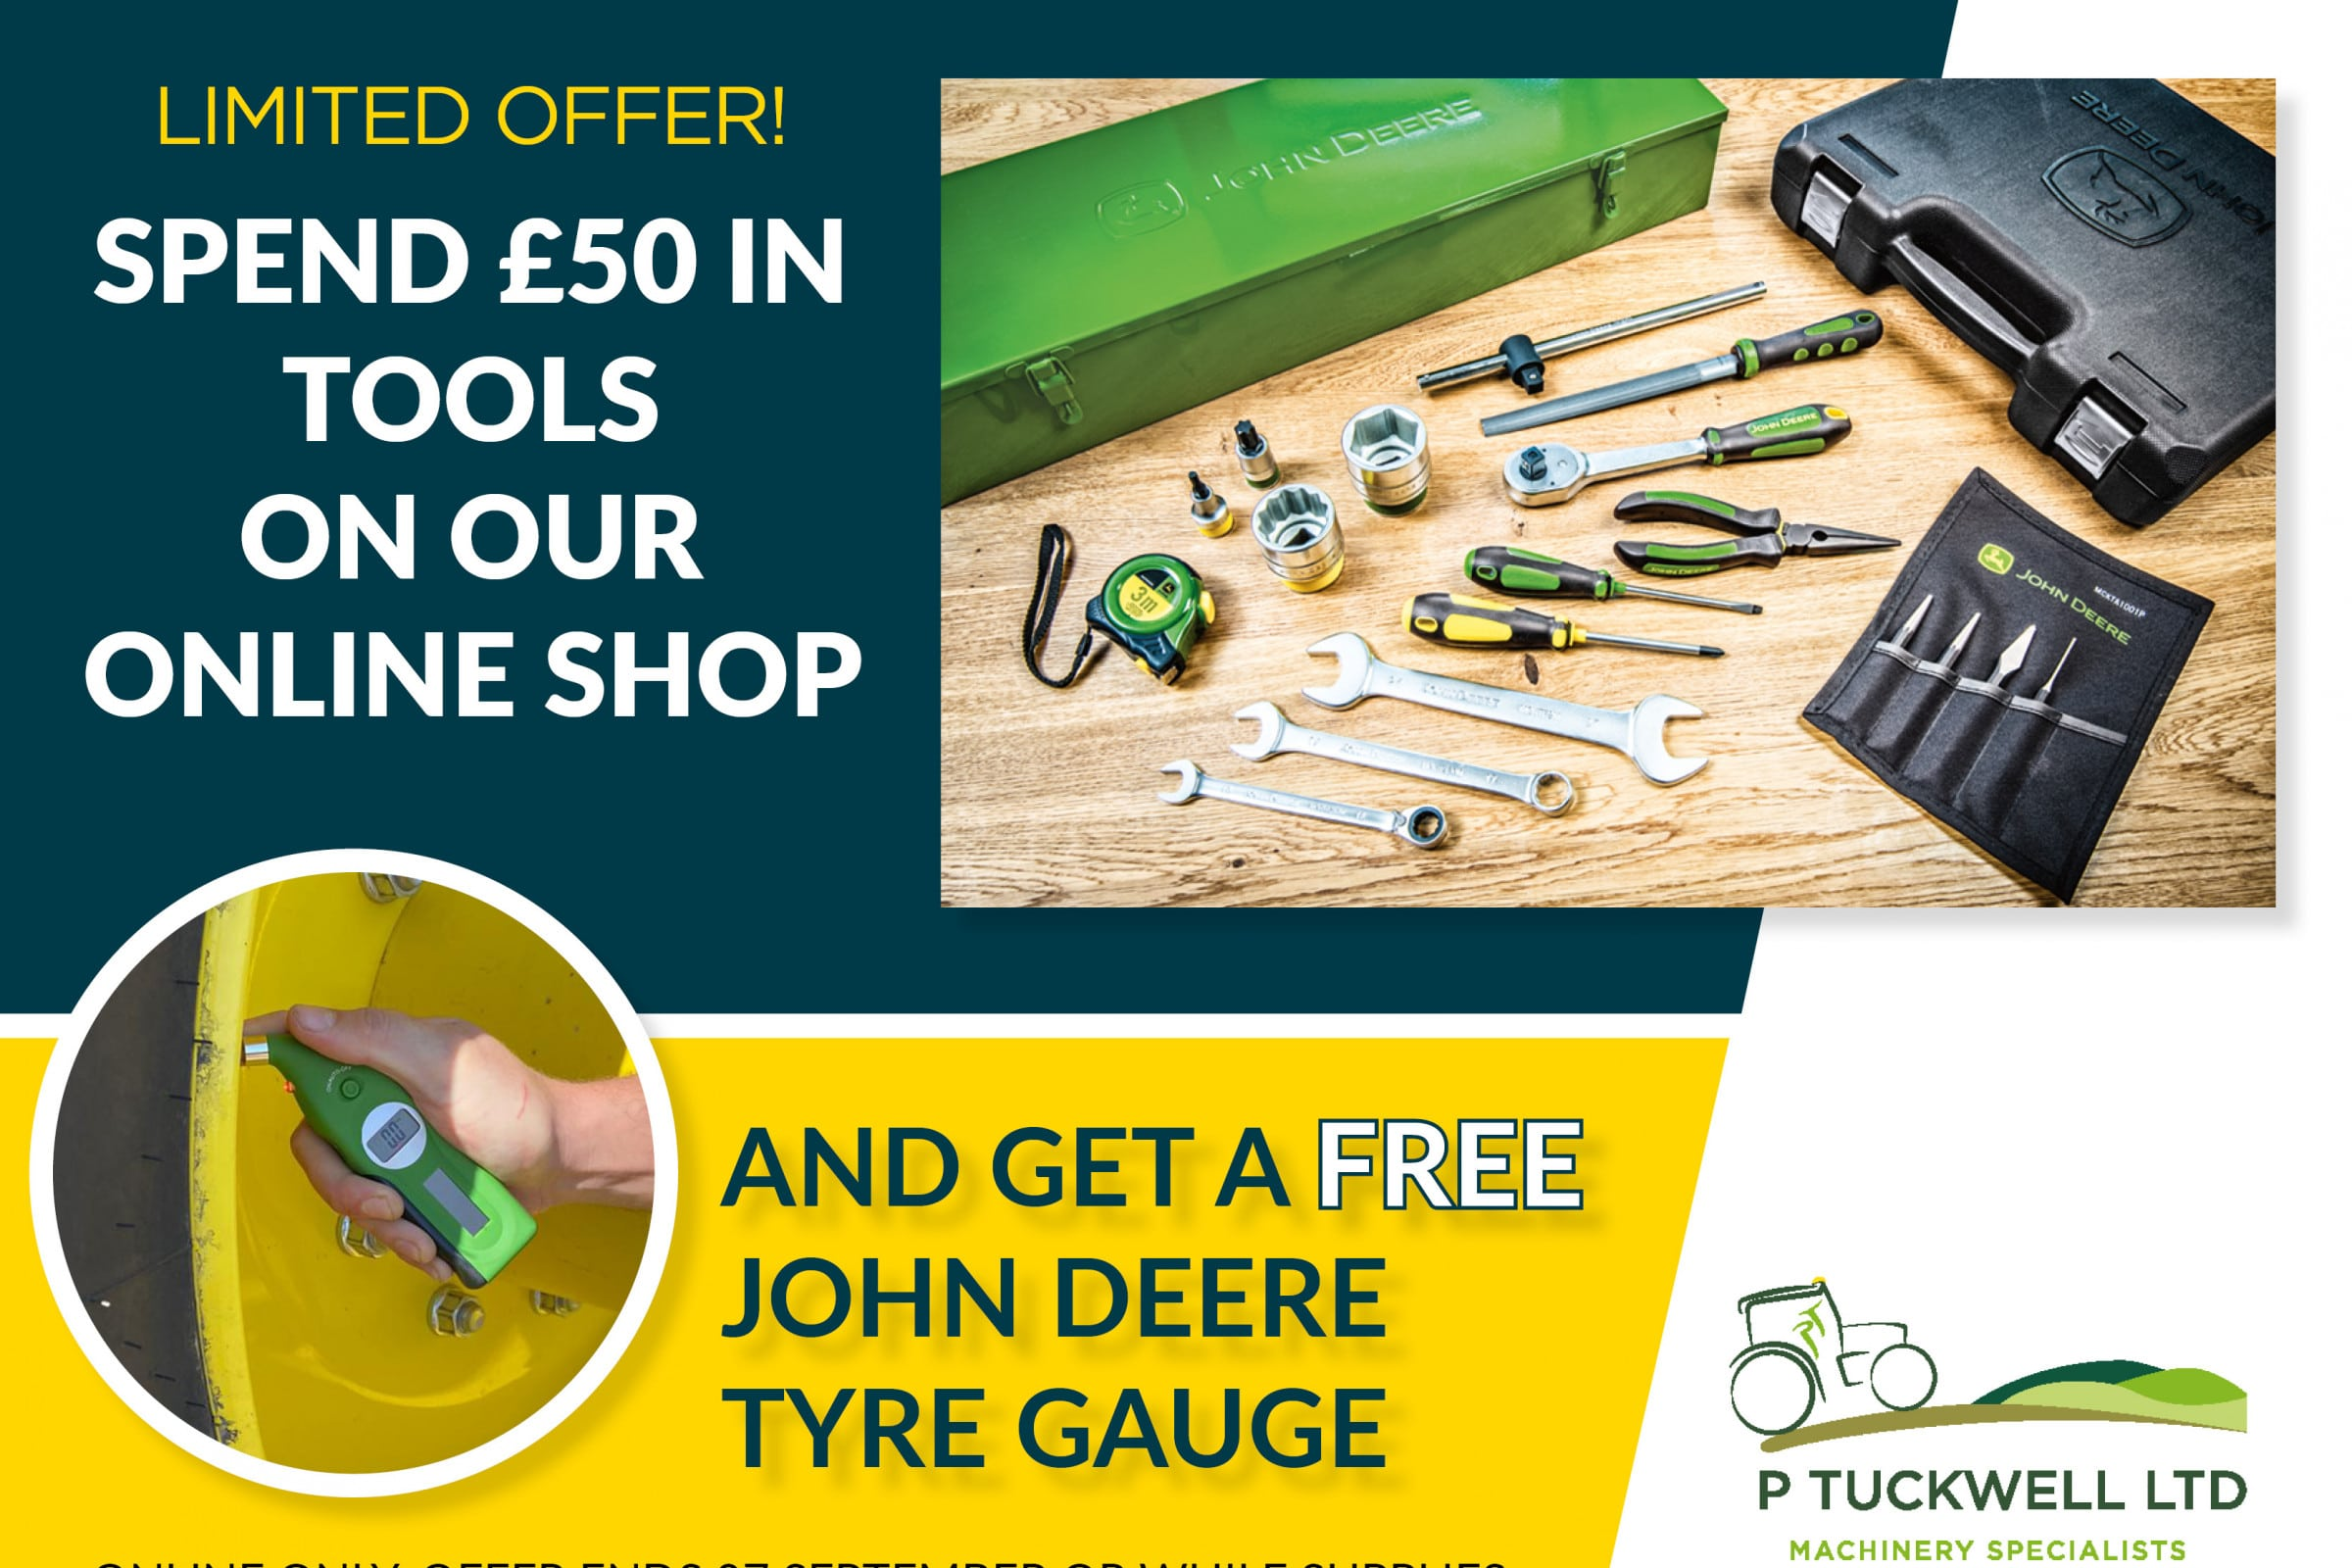 Spend £50 in tools on our online shop and get a free gift!